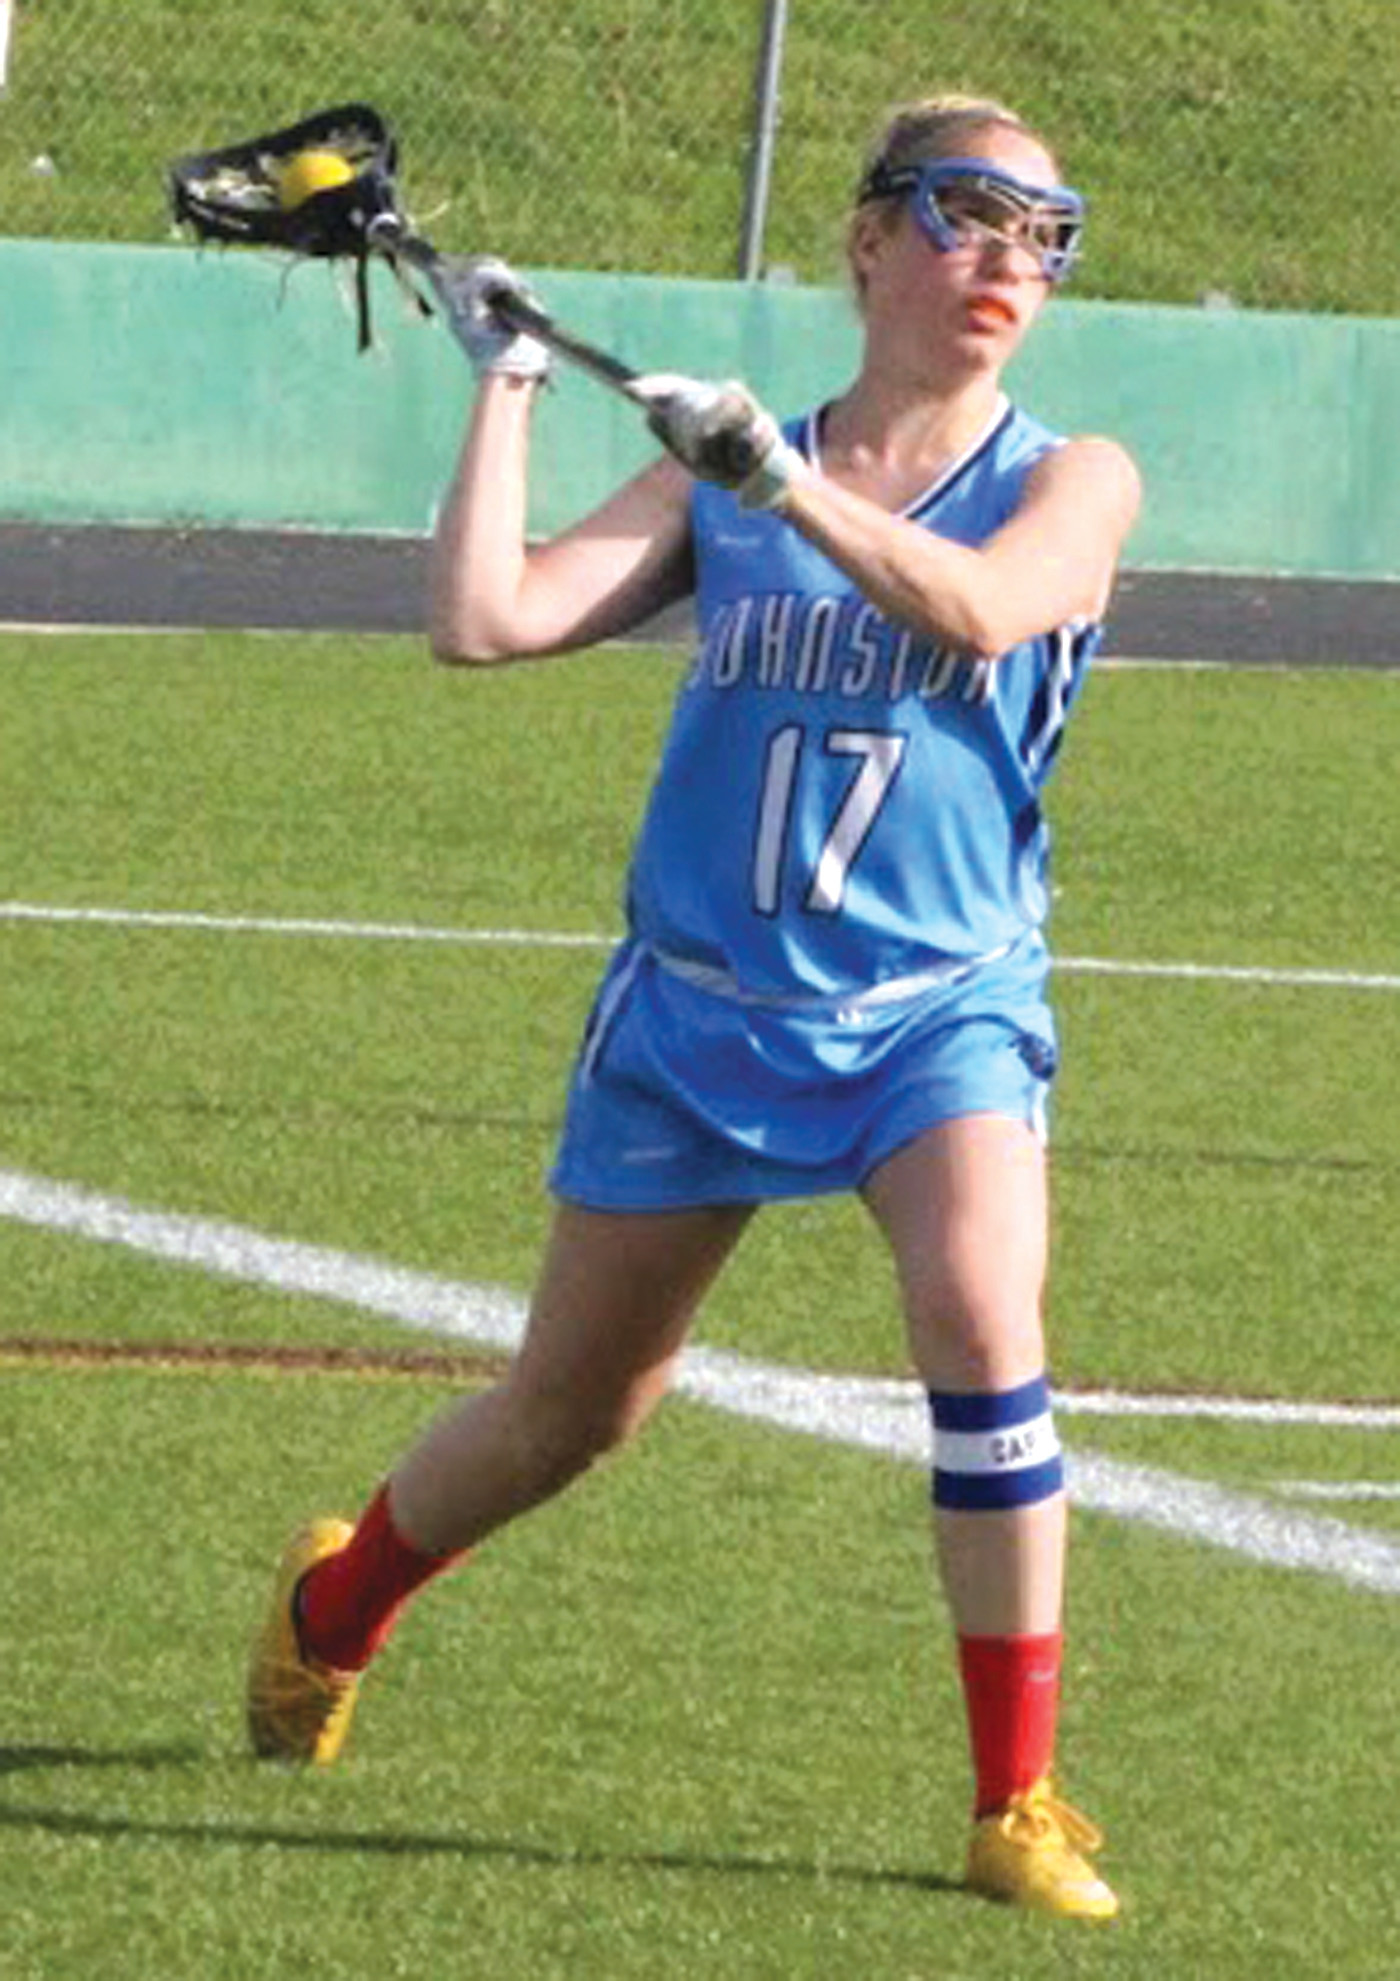 Samantha Hardman gets ready to launch the ball up the field.